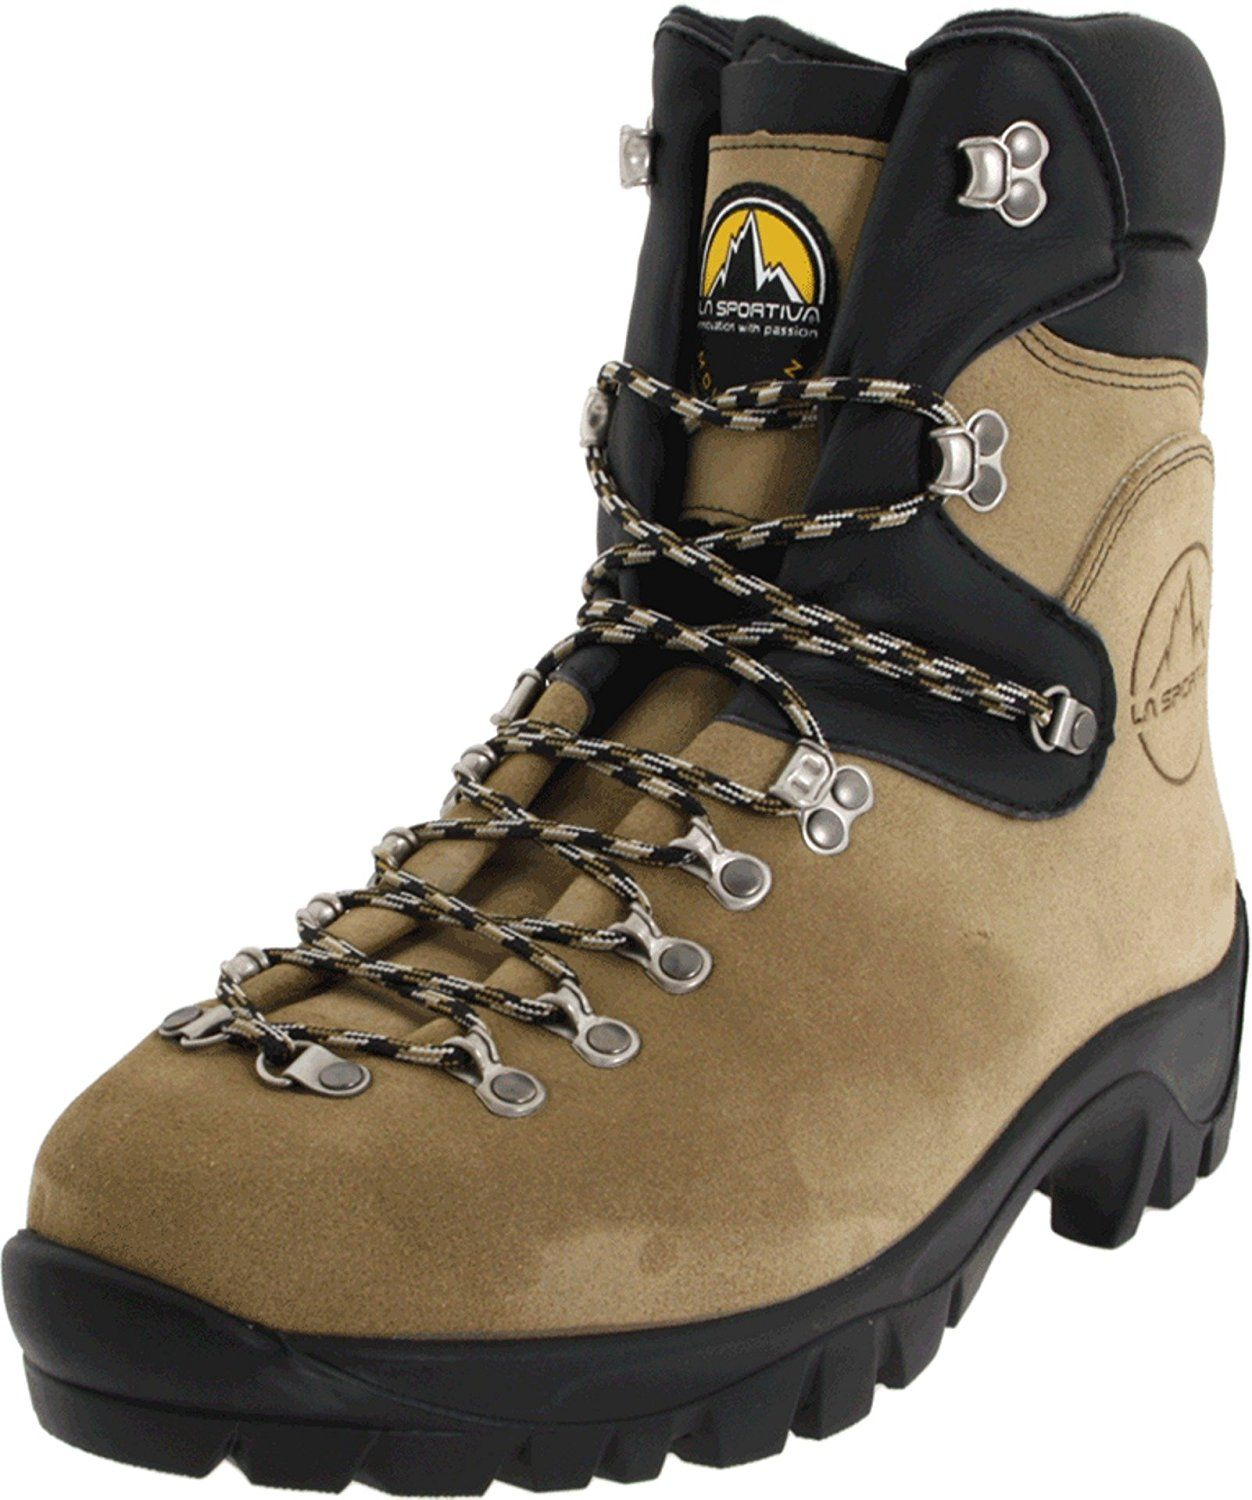 Explore Wildland Fire, Men's Boots, and more!